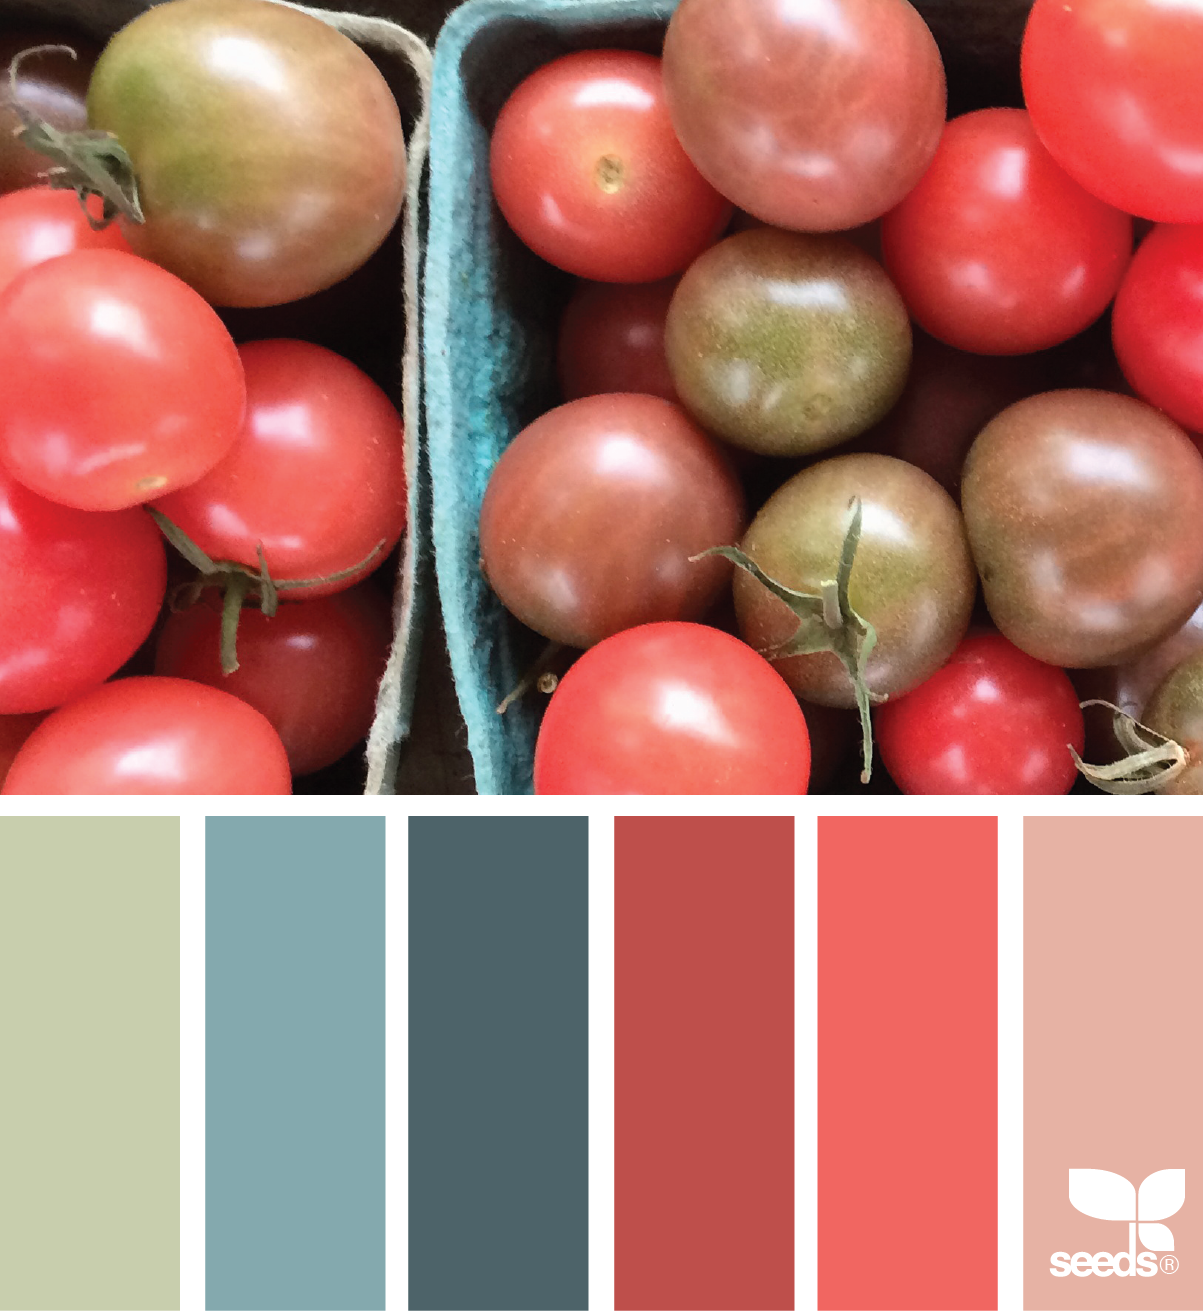 office colour schemes corporate office tomato hues office color schemescoral hues design seeds inspiration and pallets